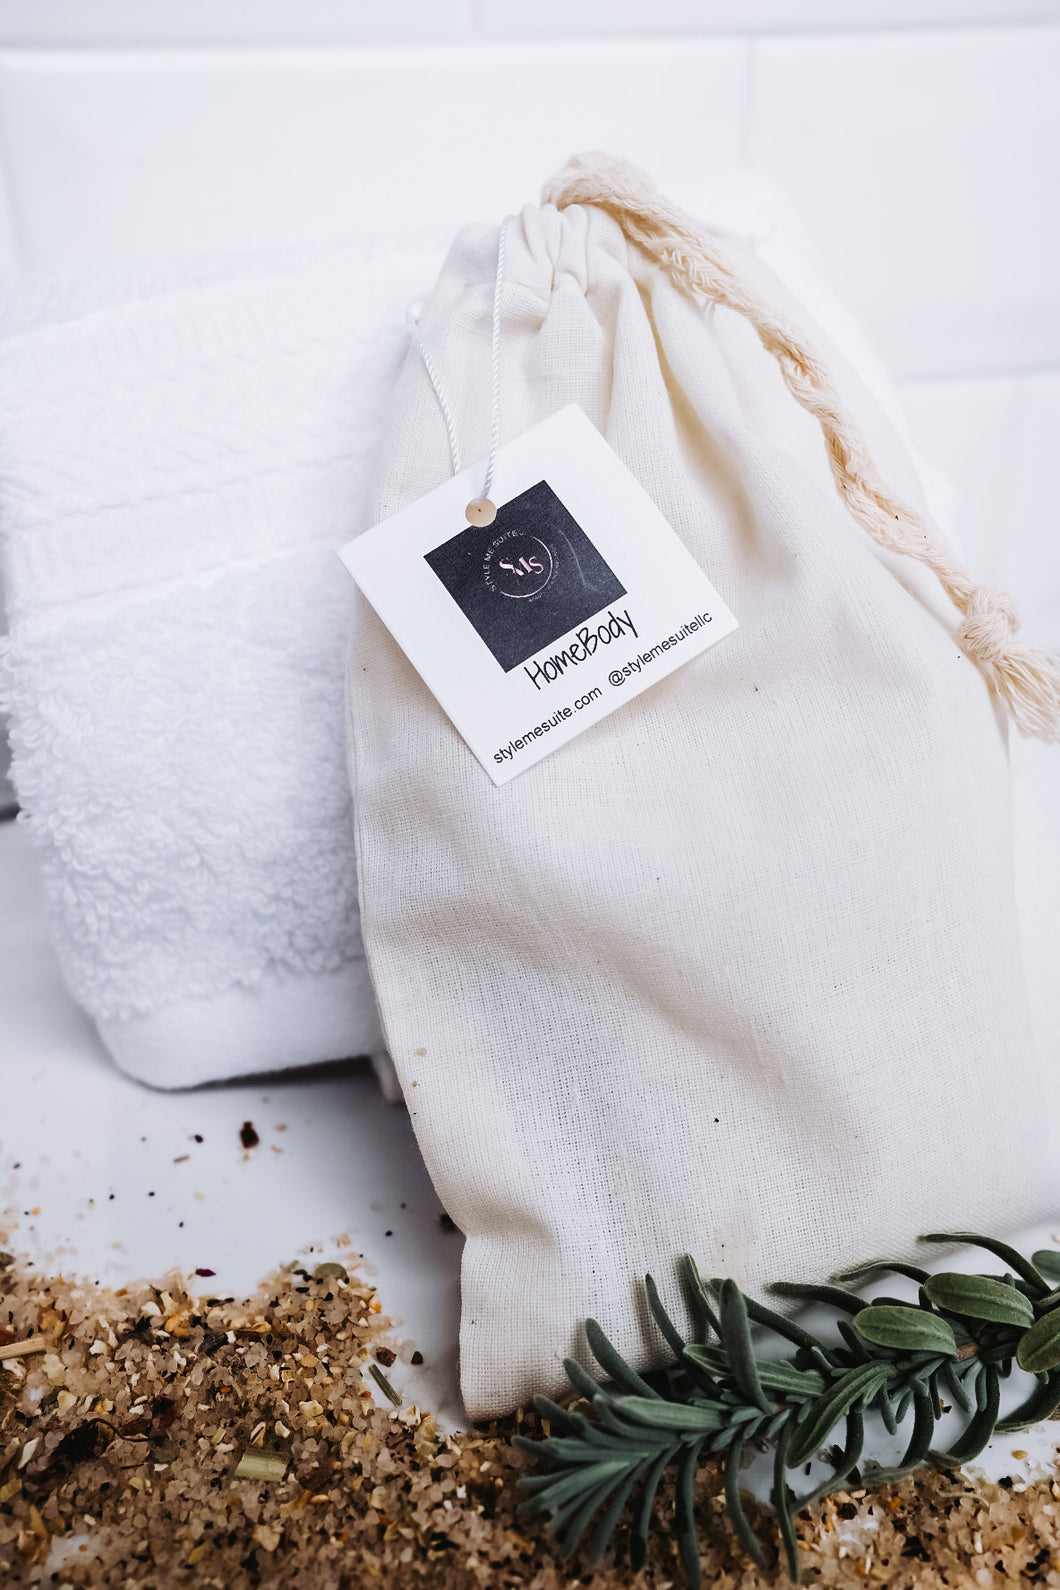 All Natural Bath Teas - bagged